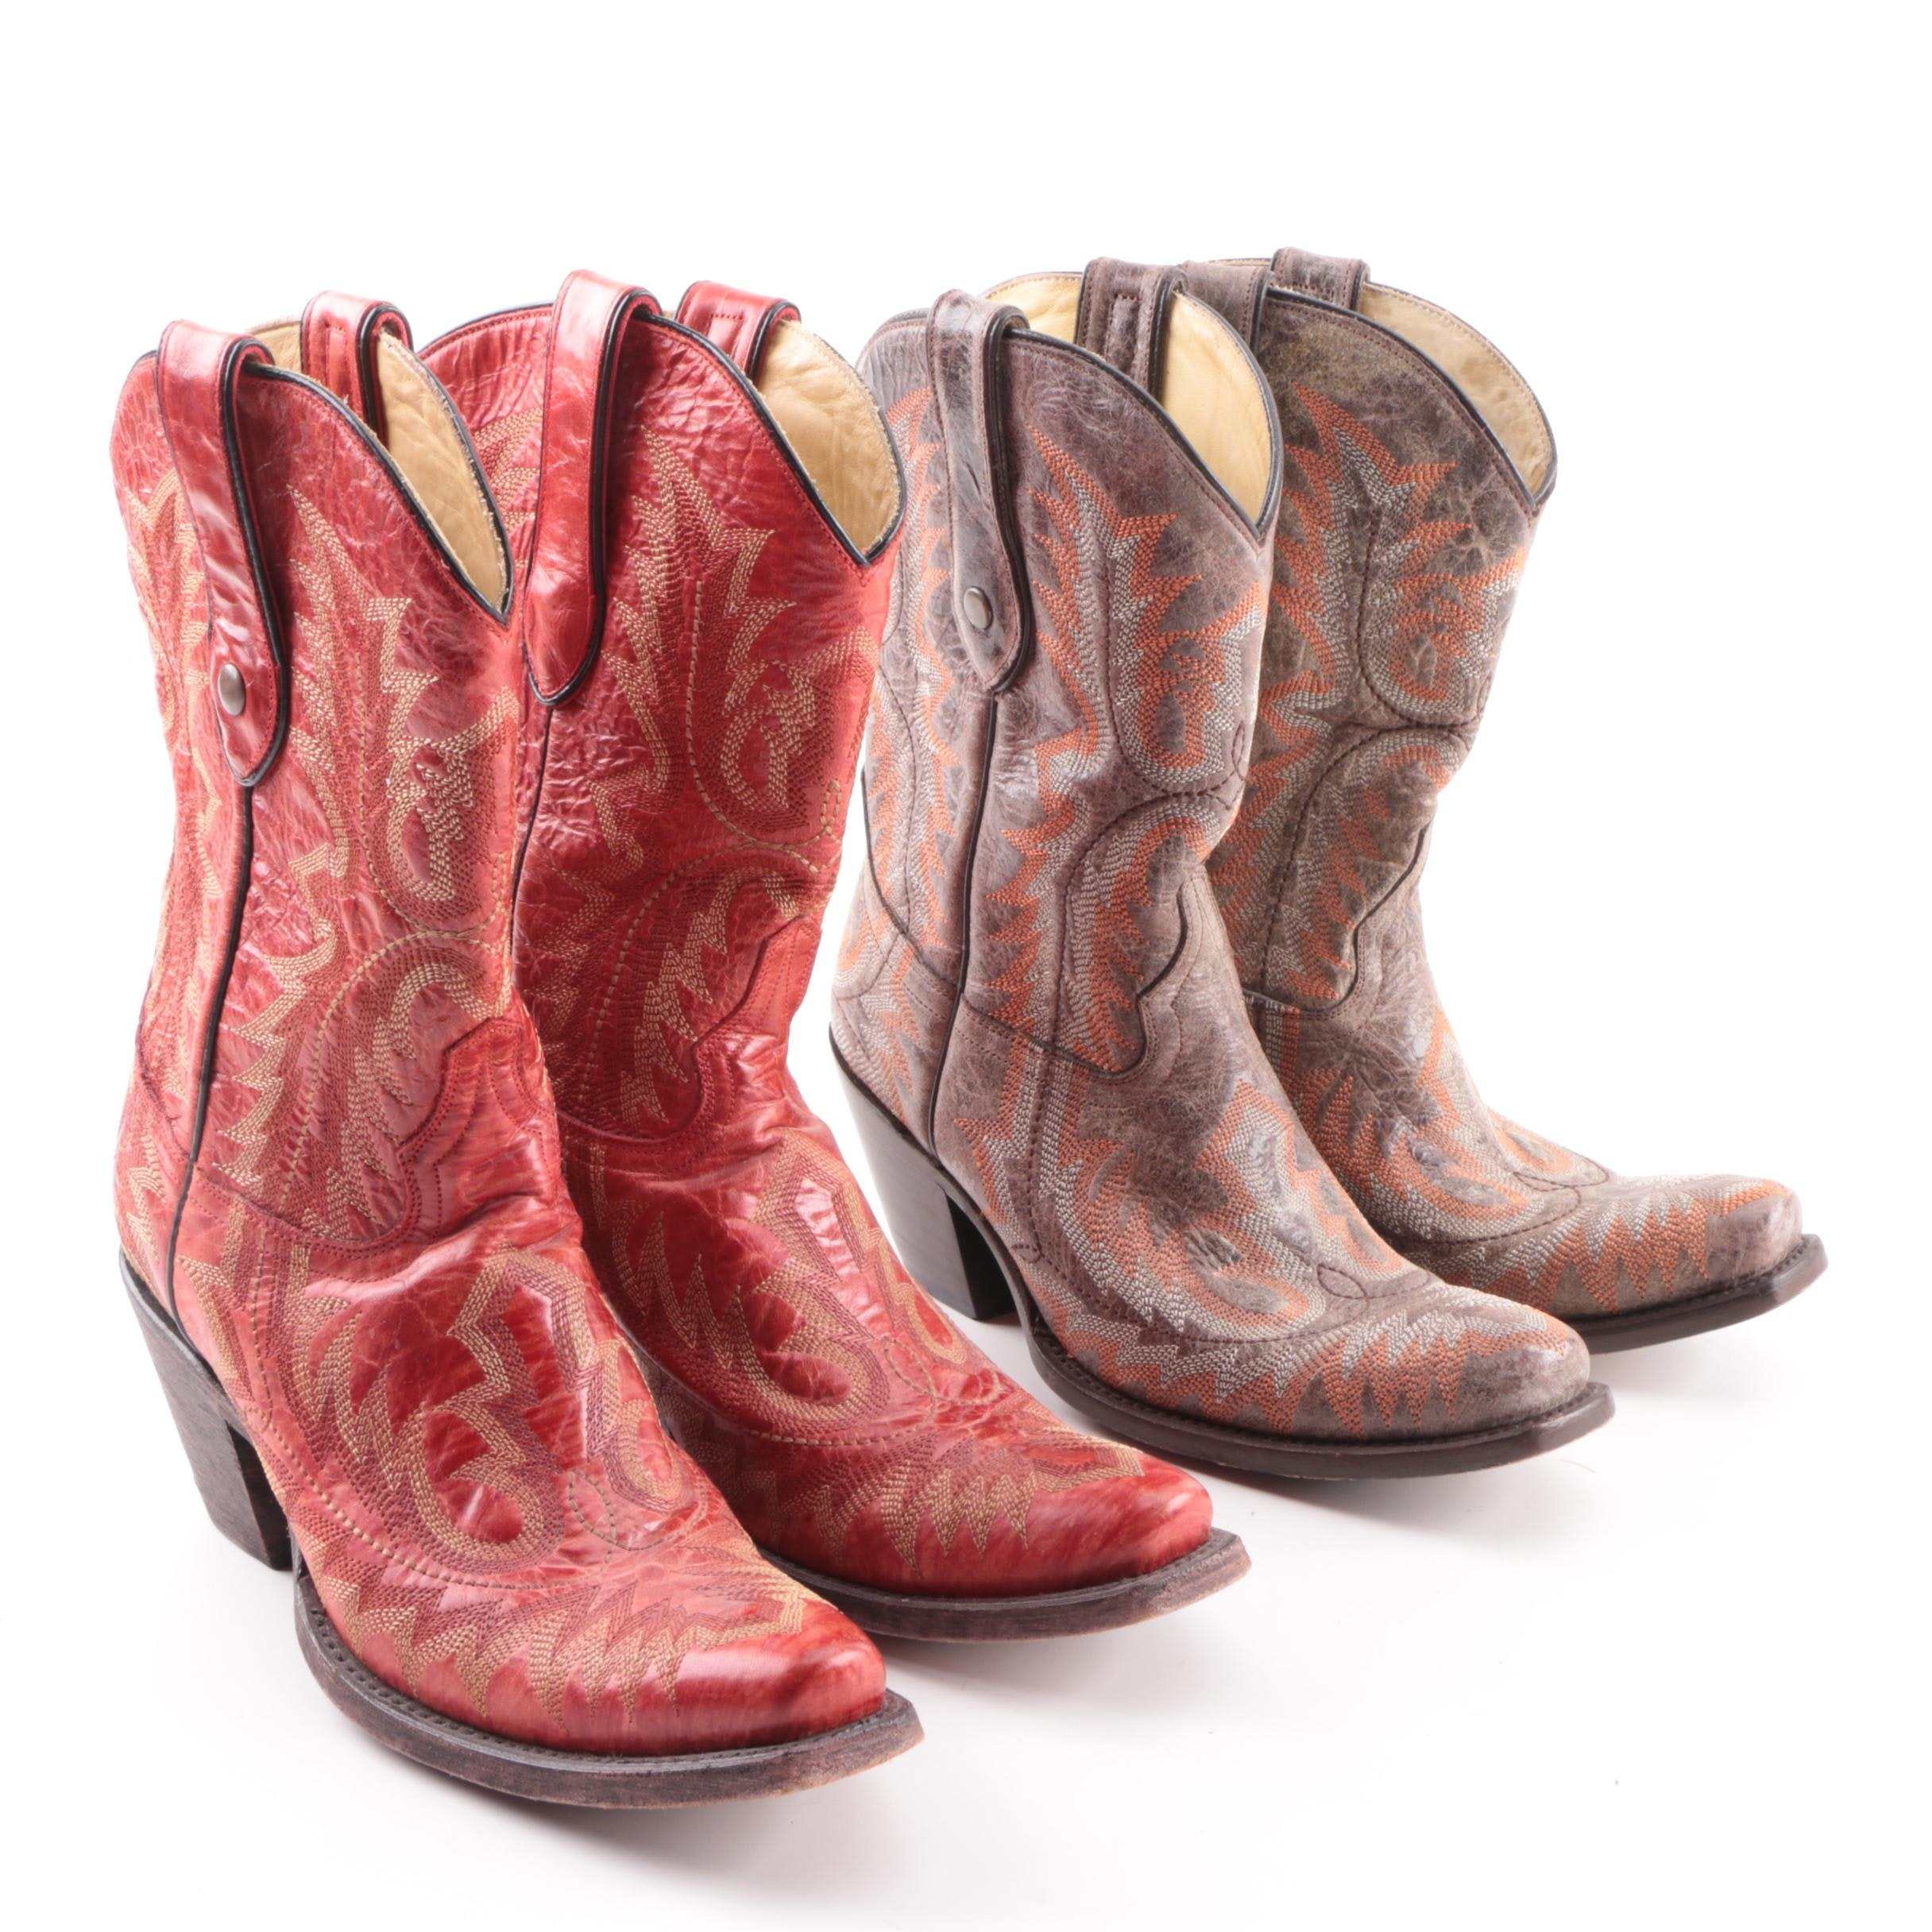 Women's Corral Red and Brown Leather Western Boots